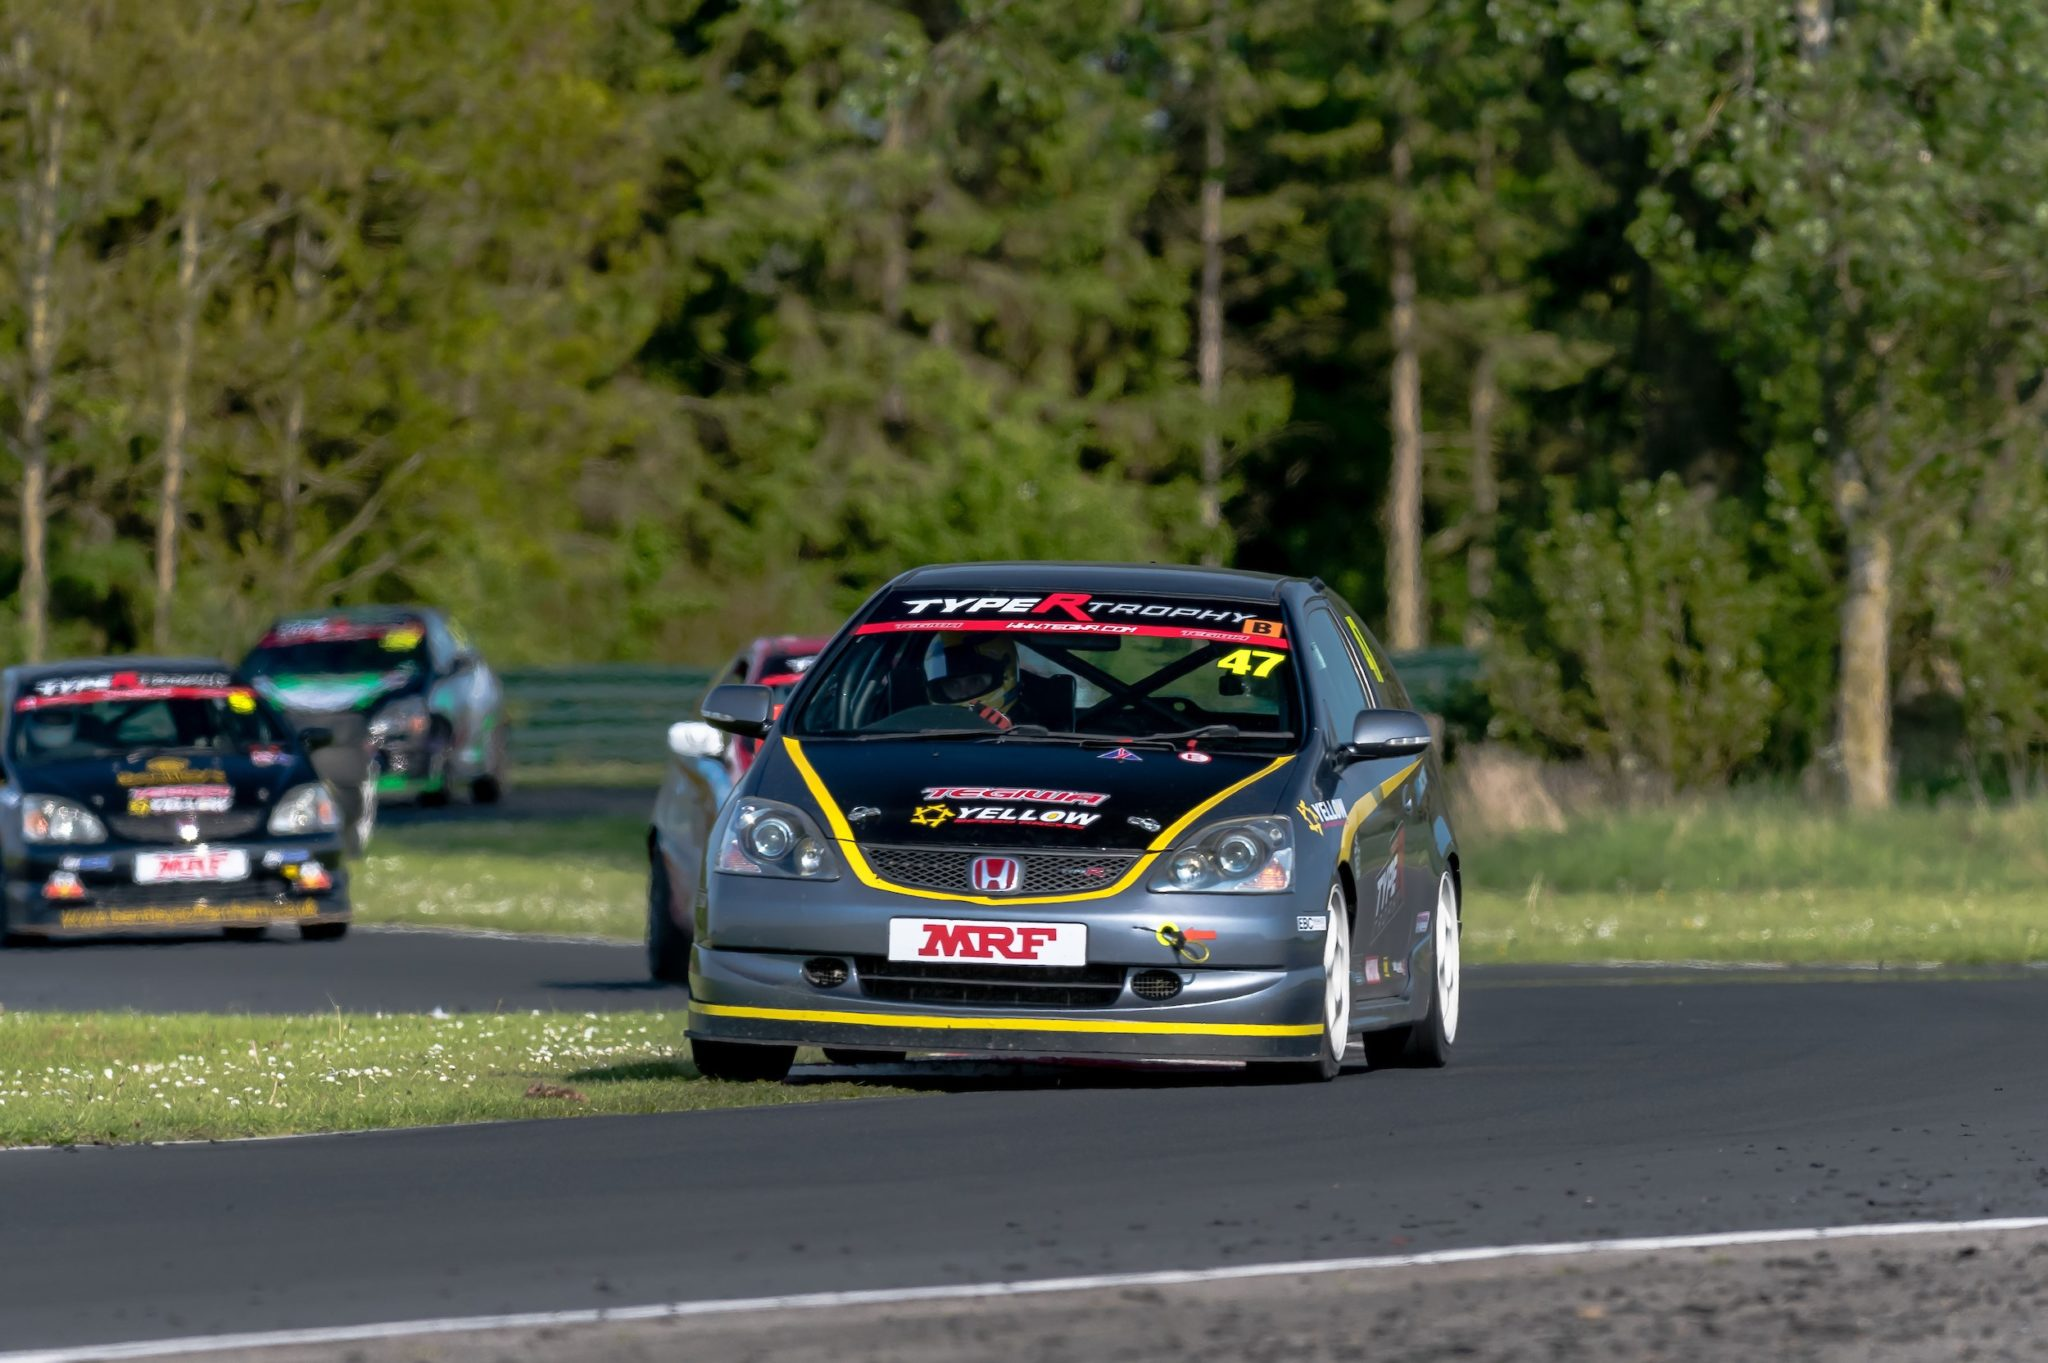 Luke Rosewell Tests RP-1 Pads in Type R Trophy Race